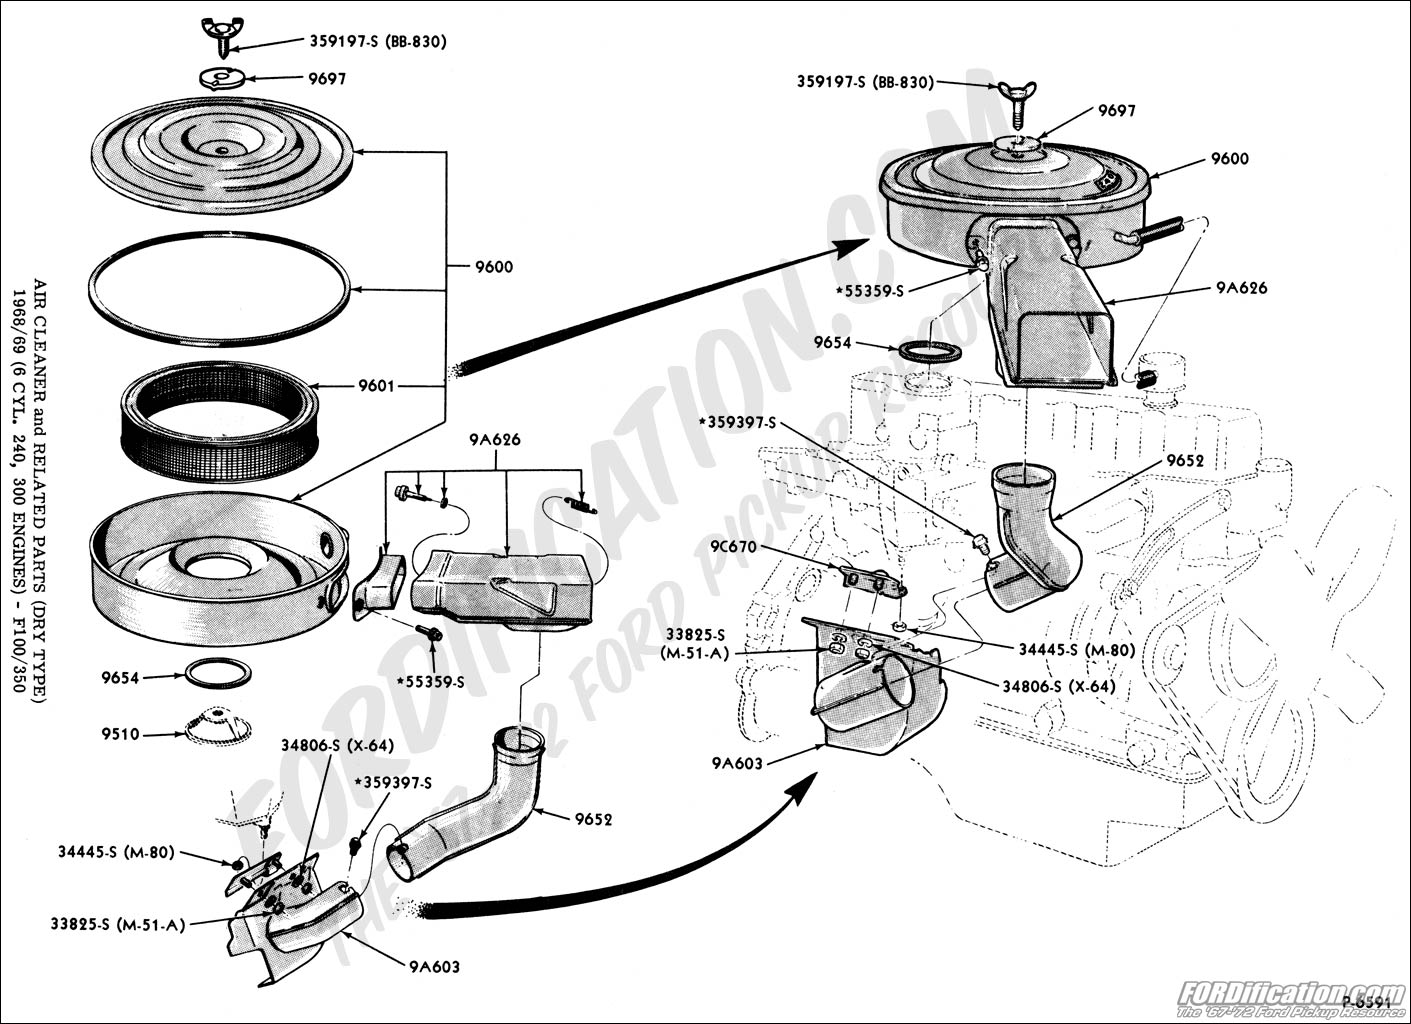 aircleaner02 1961 1963 ford f 100 wiring diagram,f free download printable Ford Truck Wiring Diagrams at aneh.co